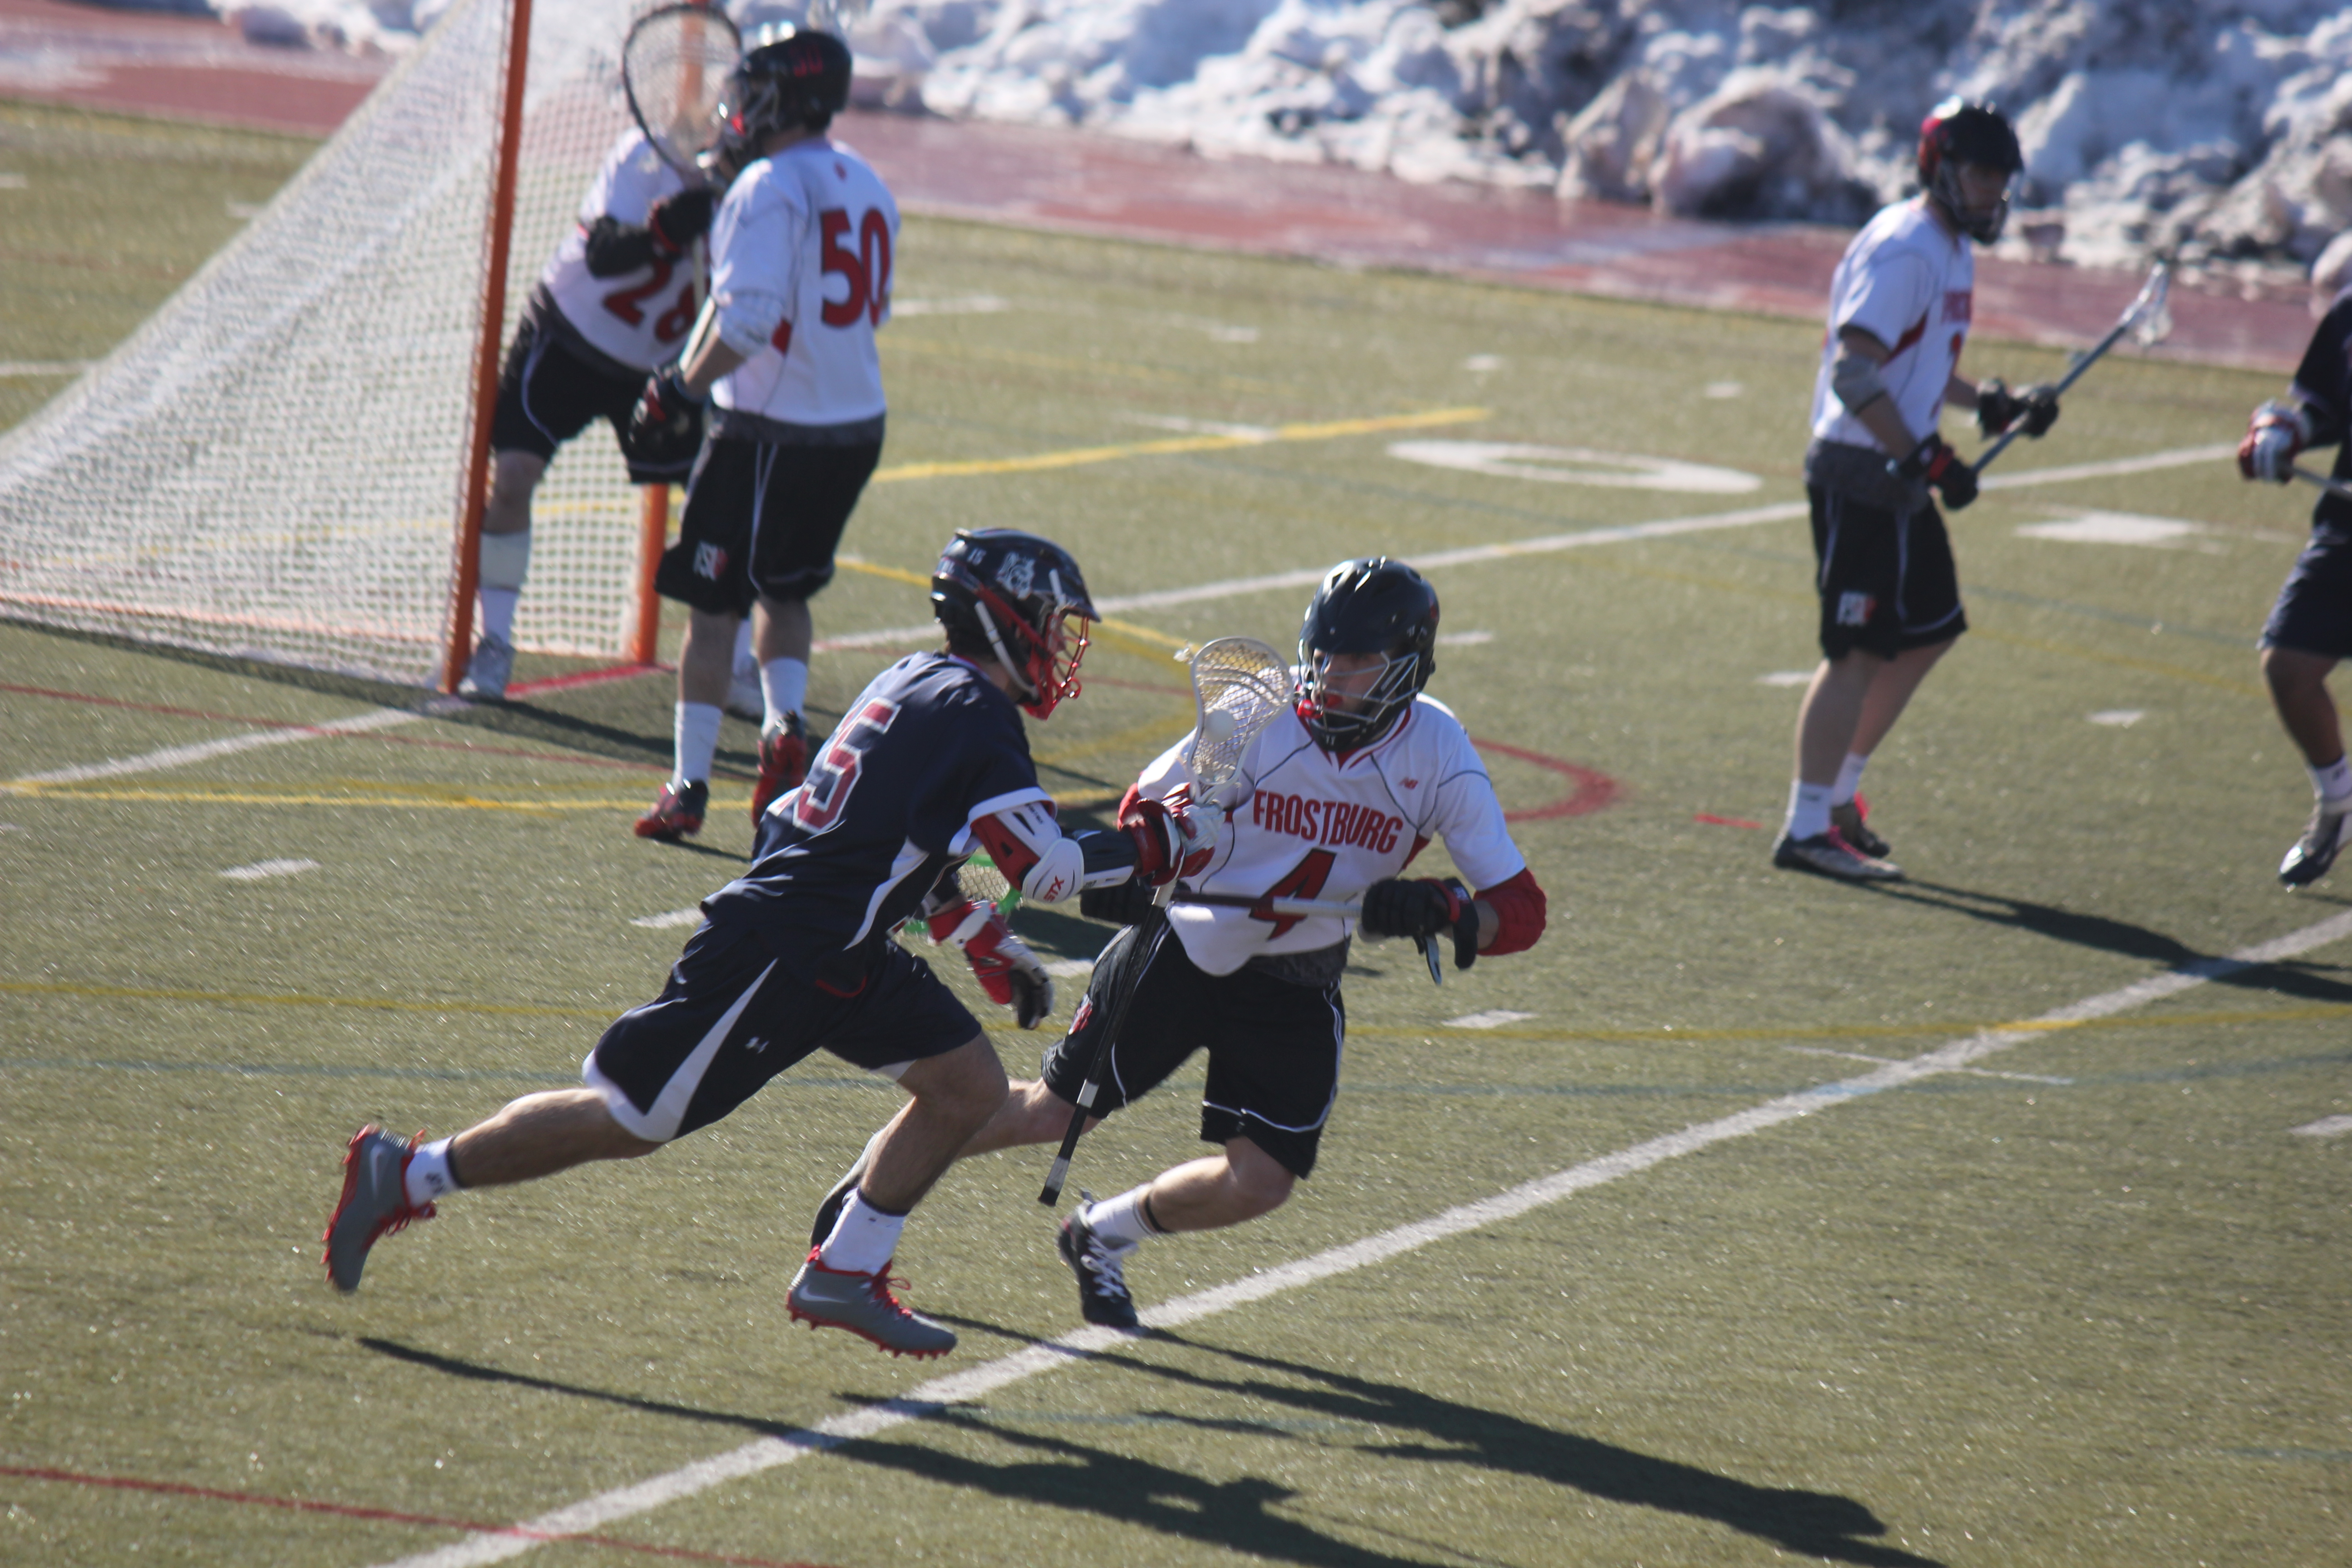 Senior midfielder Andy Luhmann had an assist, a caused turnover, and two groundballs in the home opener. (Brandon Holmes/TBL)